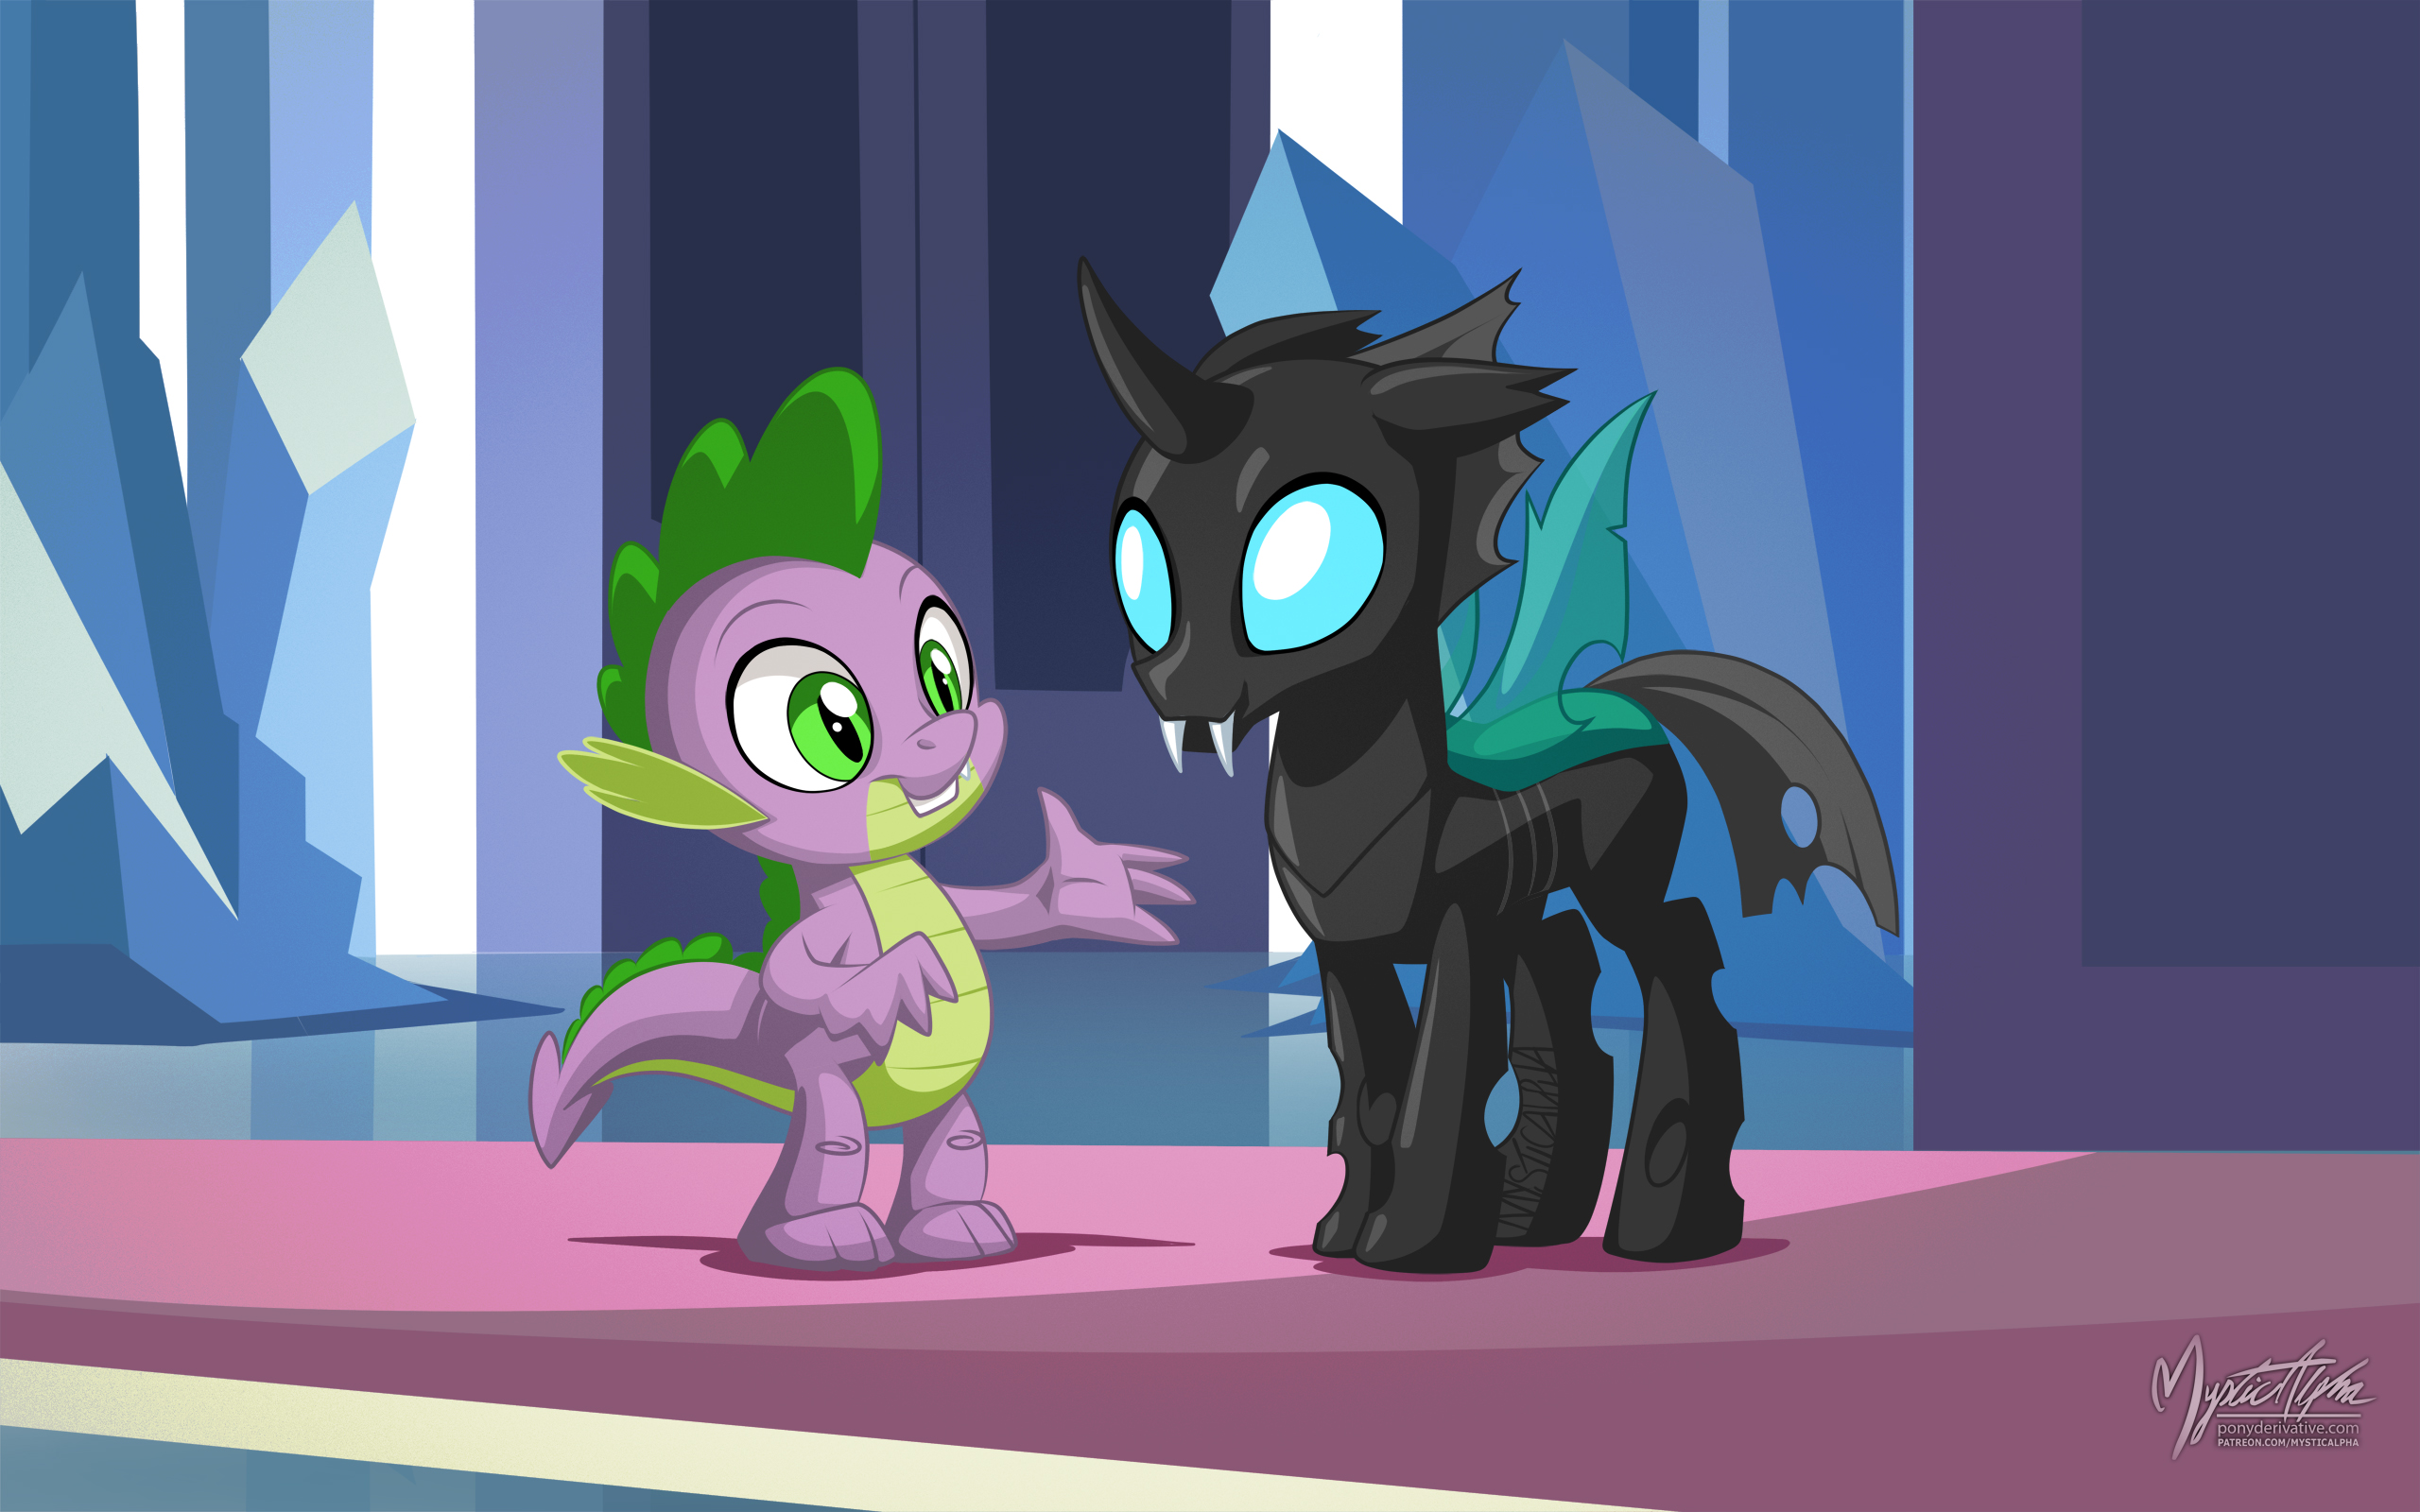 Spike and Thorax